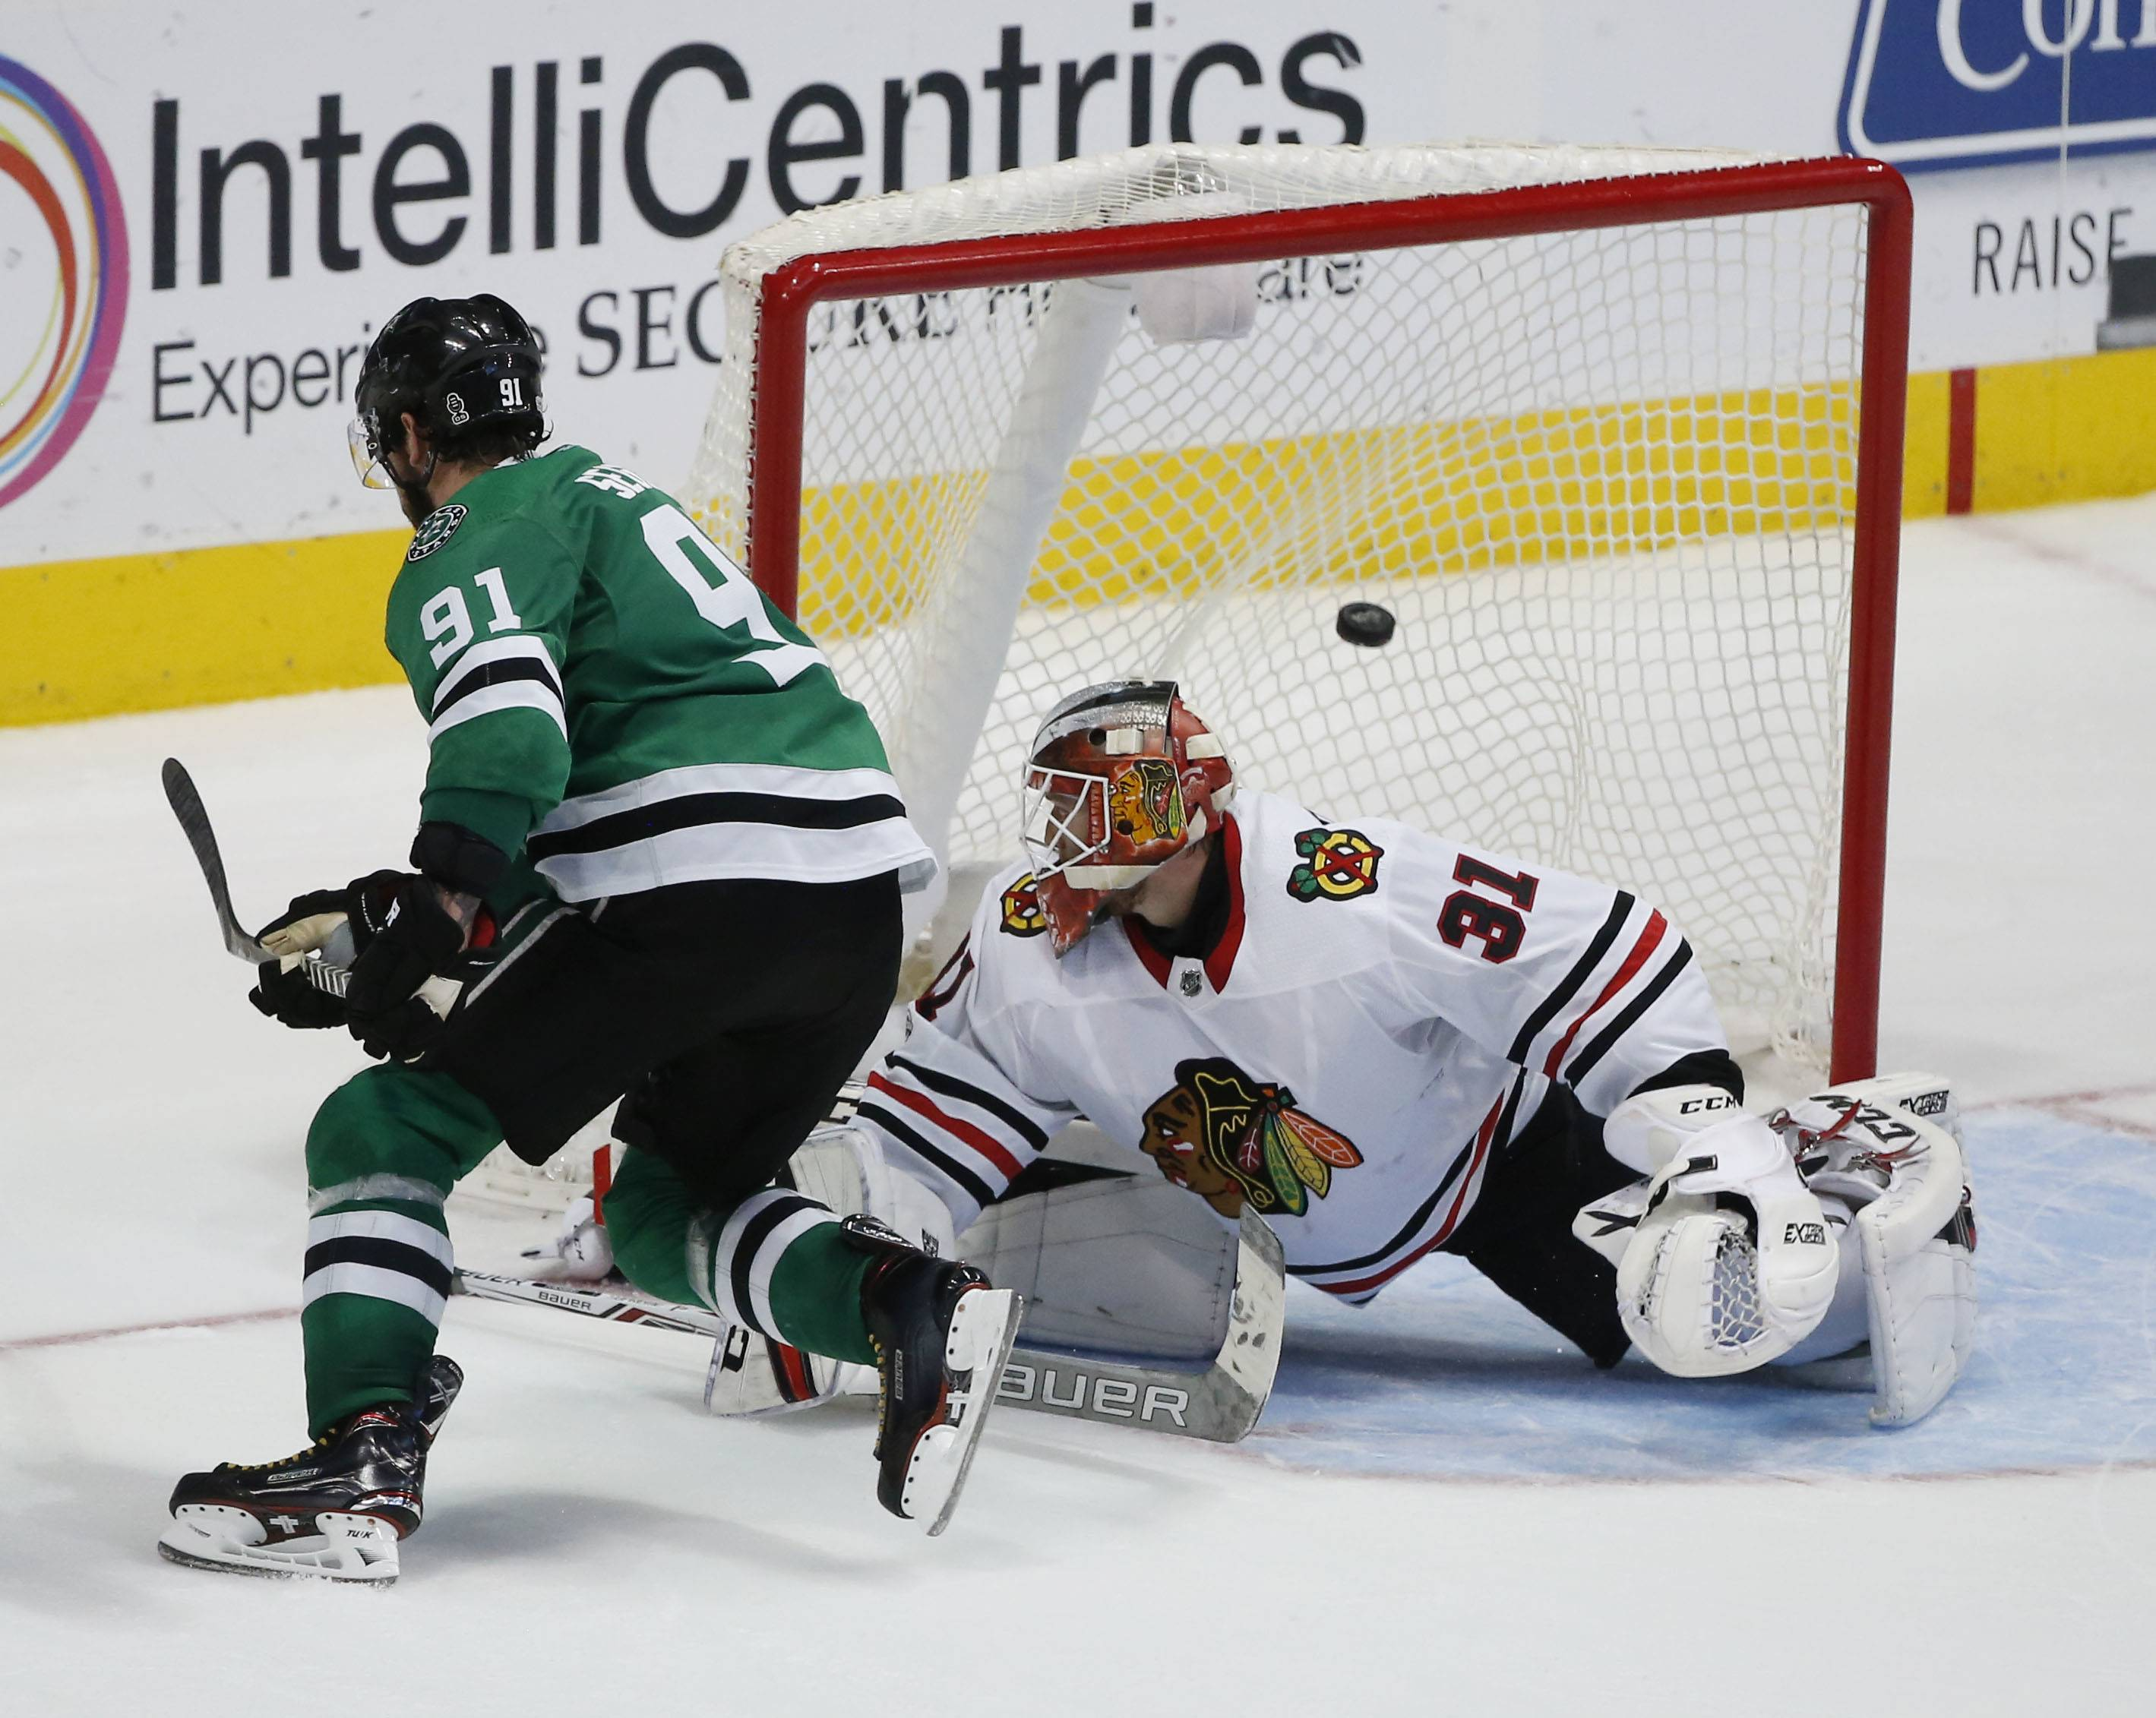 Dallas Stars center Tyler Seguin (91) gets the puck past Chicago Blackhawks goalie Anton Forsberg (31) during the shootout of an NHL hockey game, Saturday, Dec. 2, 2017, in Dallas. The Stars defeated the Blackhawks 3-2. (AP Photo/ Michael Ainsworth)